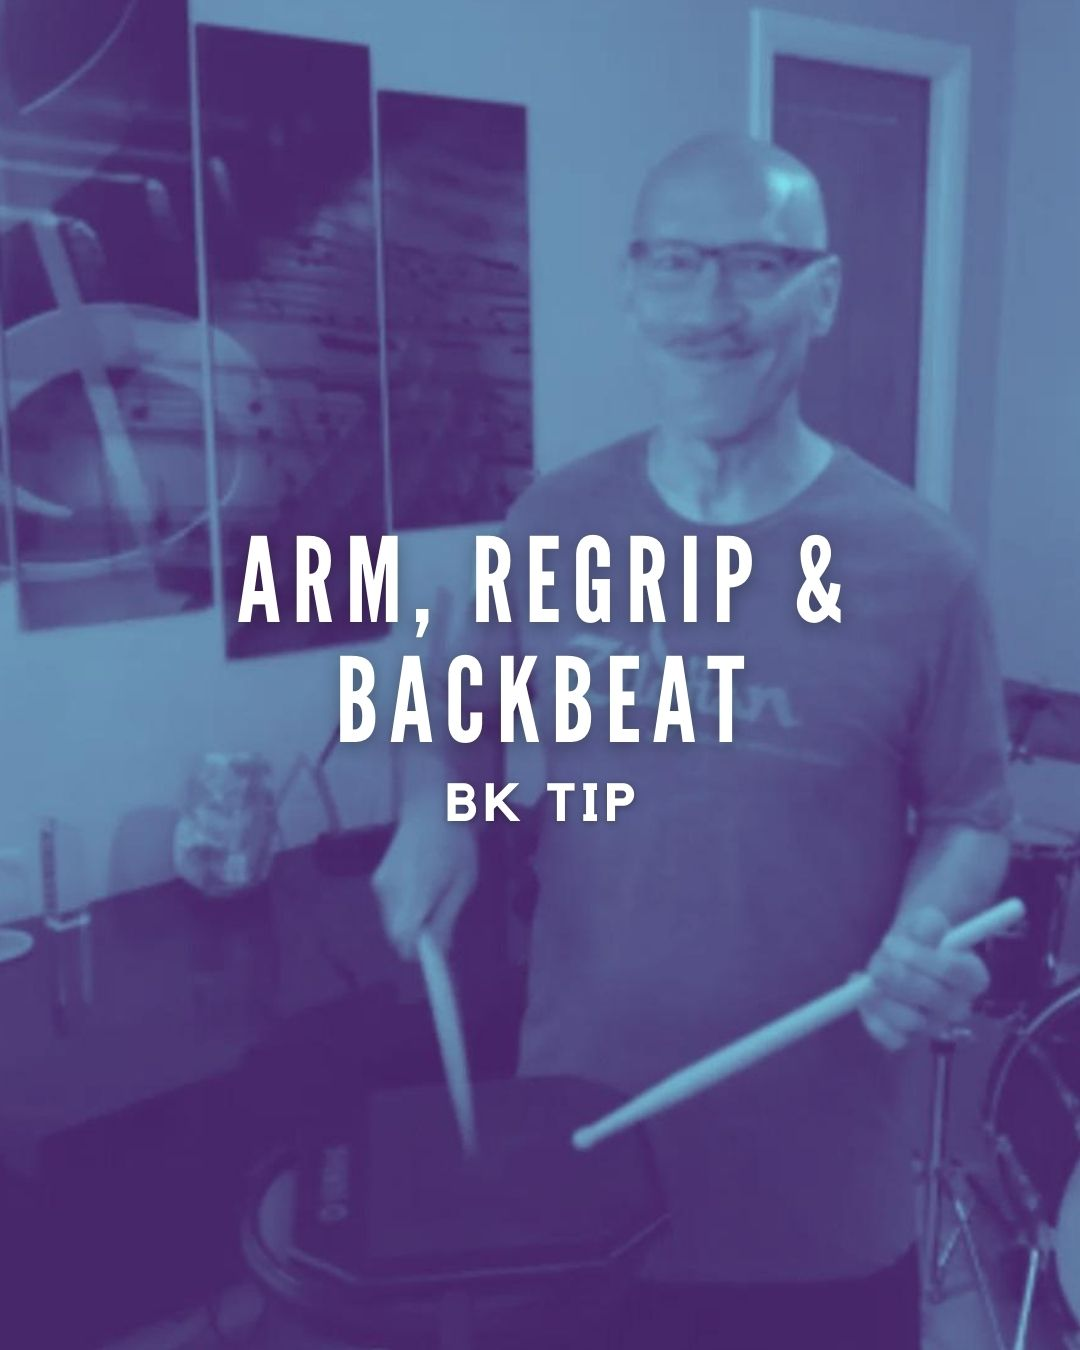 Arm, Regrip & Backbeat